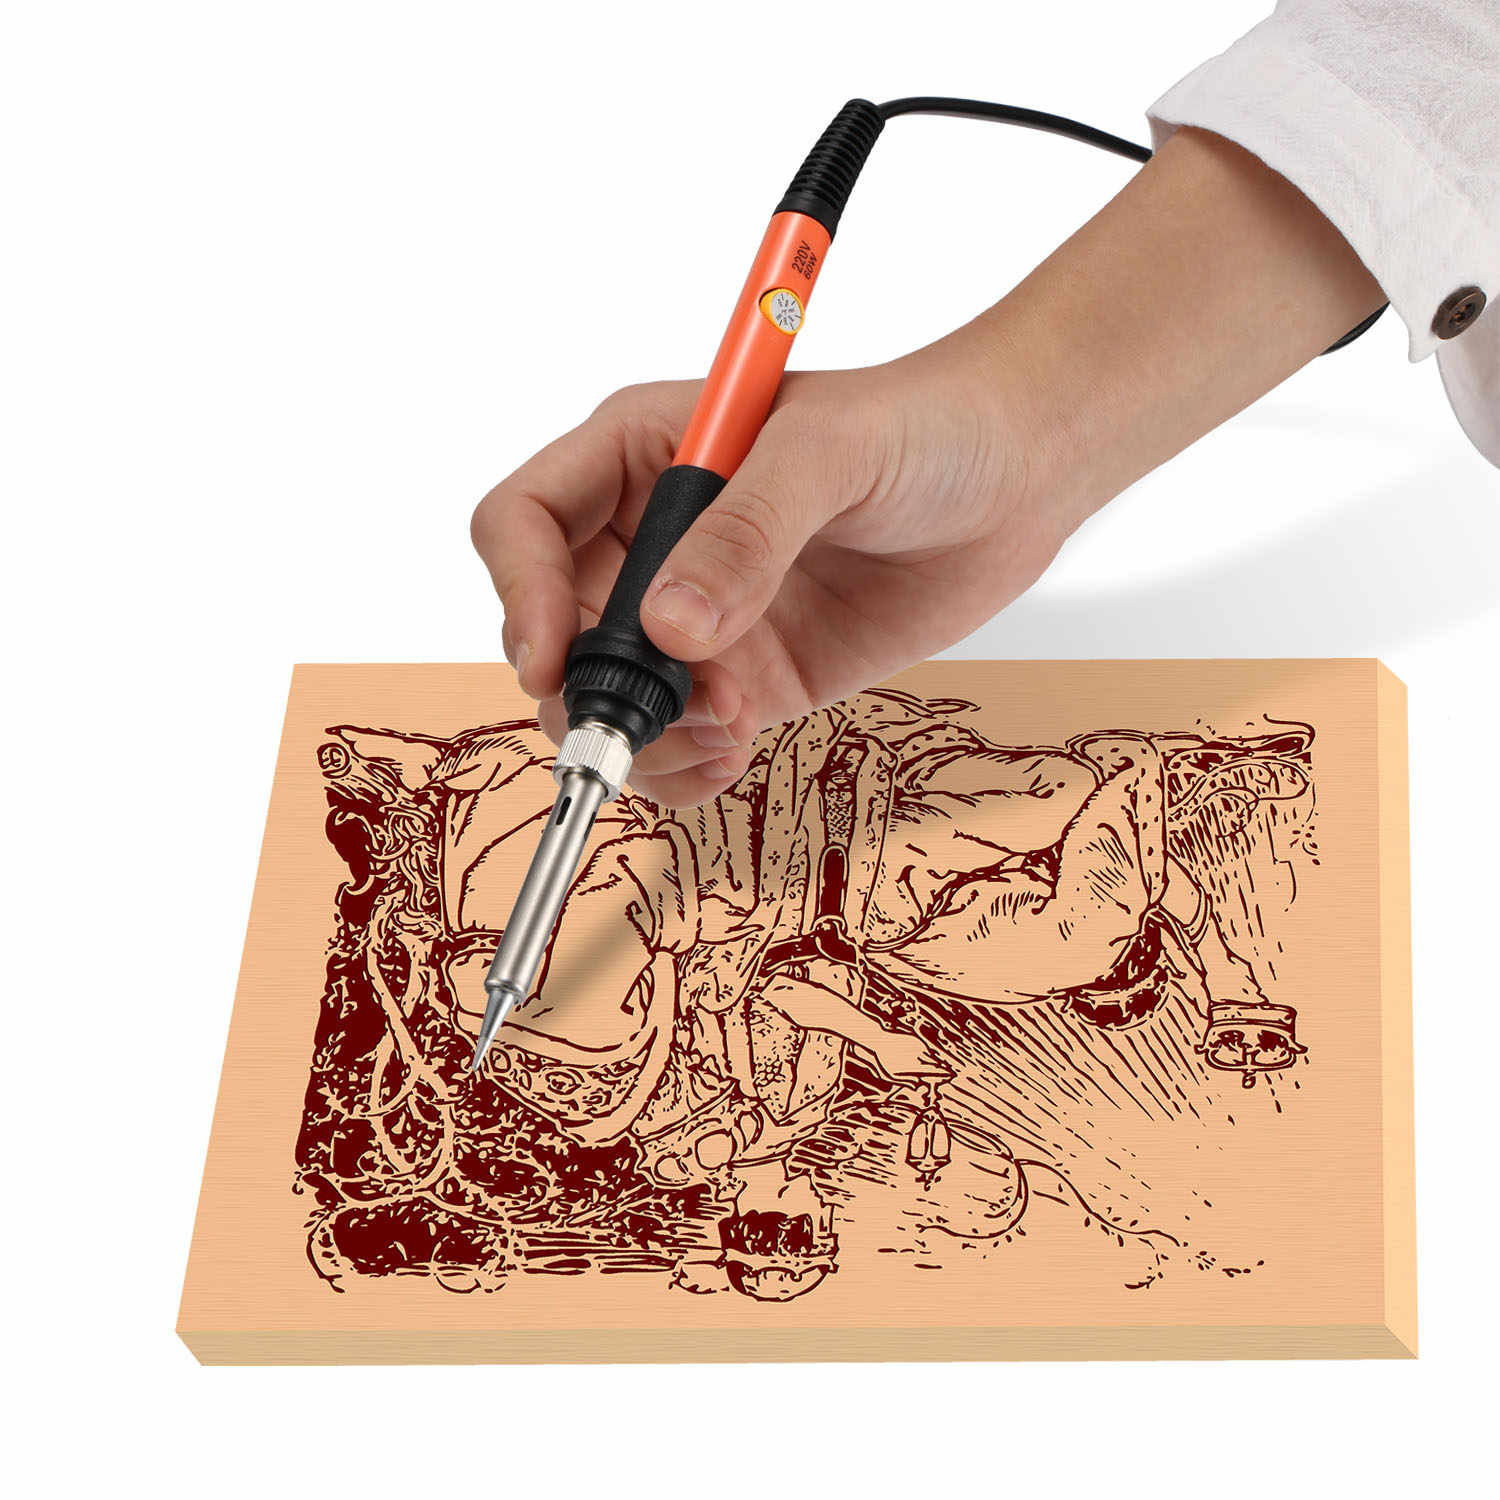 60W Electric soldering iron Wood Burning Kit Best Pyrography